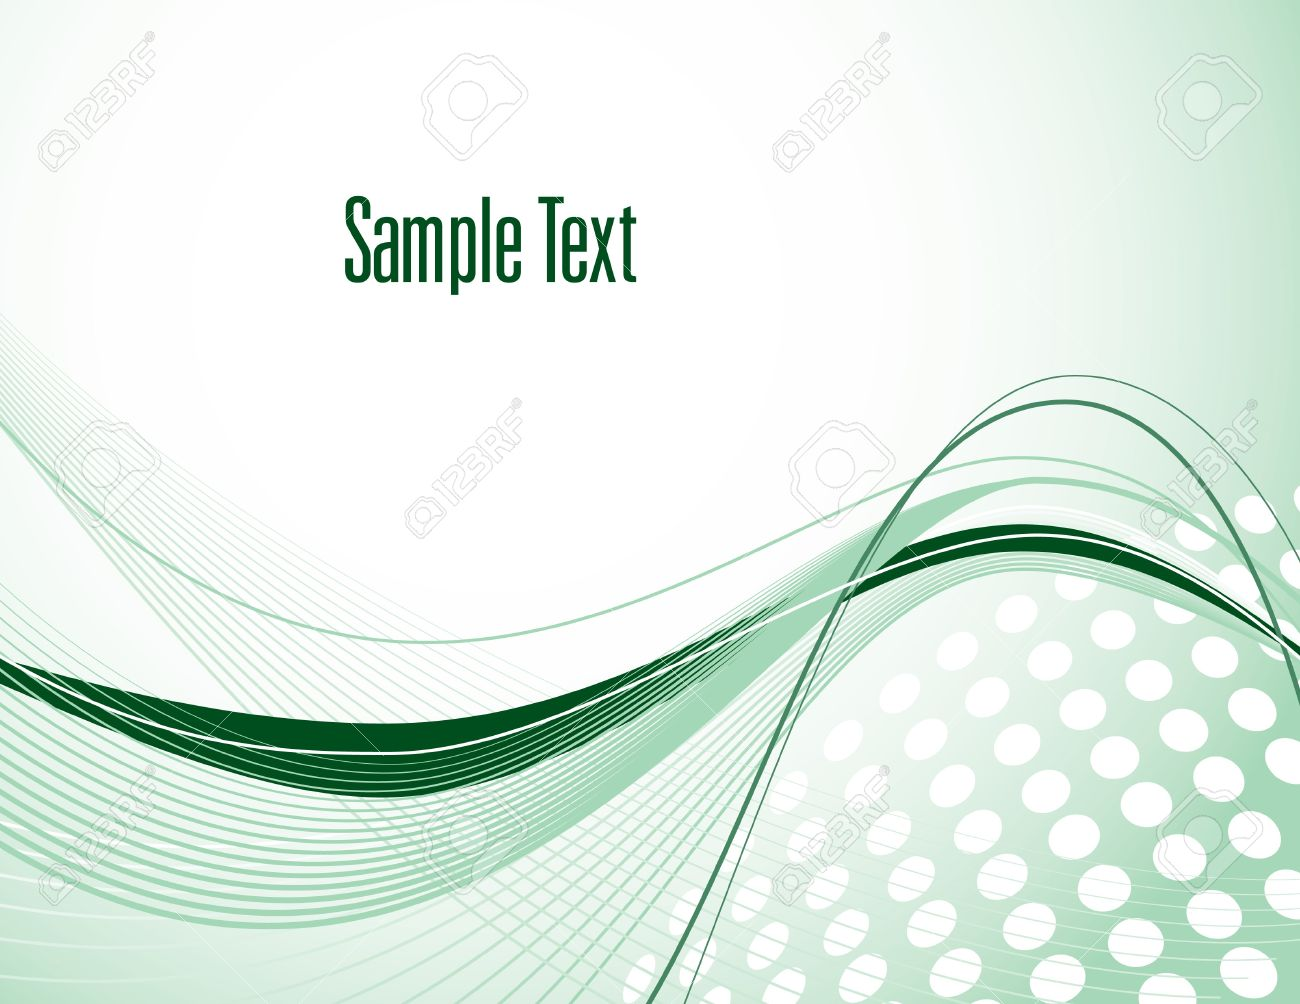 cover page technology stock photos pictures royalty cover cover page technology abstract vector background